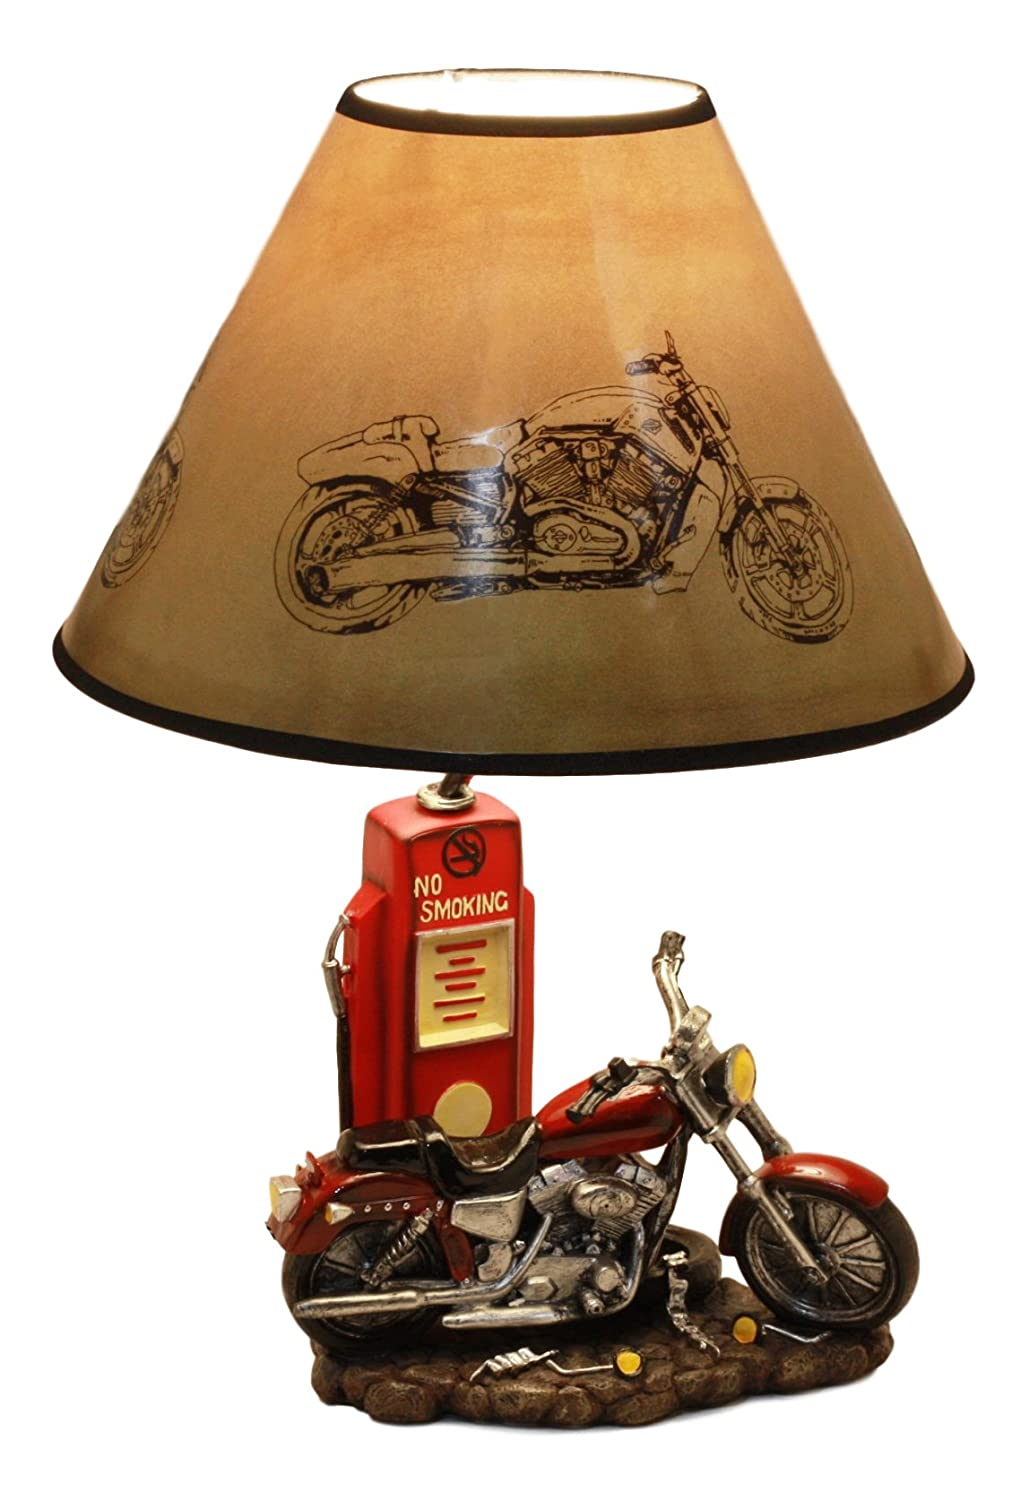 "Ebros Vintage Retro Red Motorcycle By Classic Gas Pump Desktop Table Lamp 19""Tall Nostalgic Highway Road Runner Home Decor"